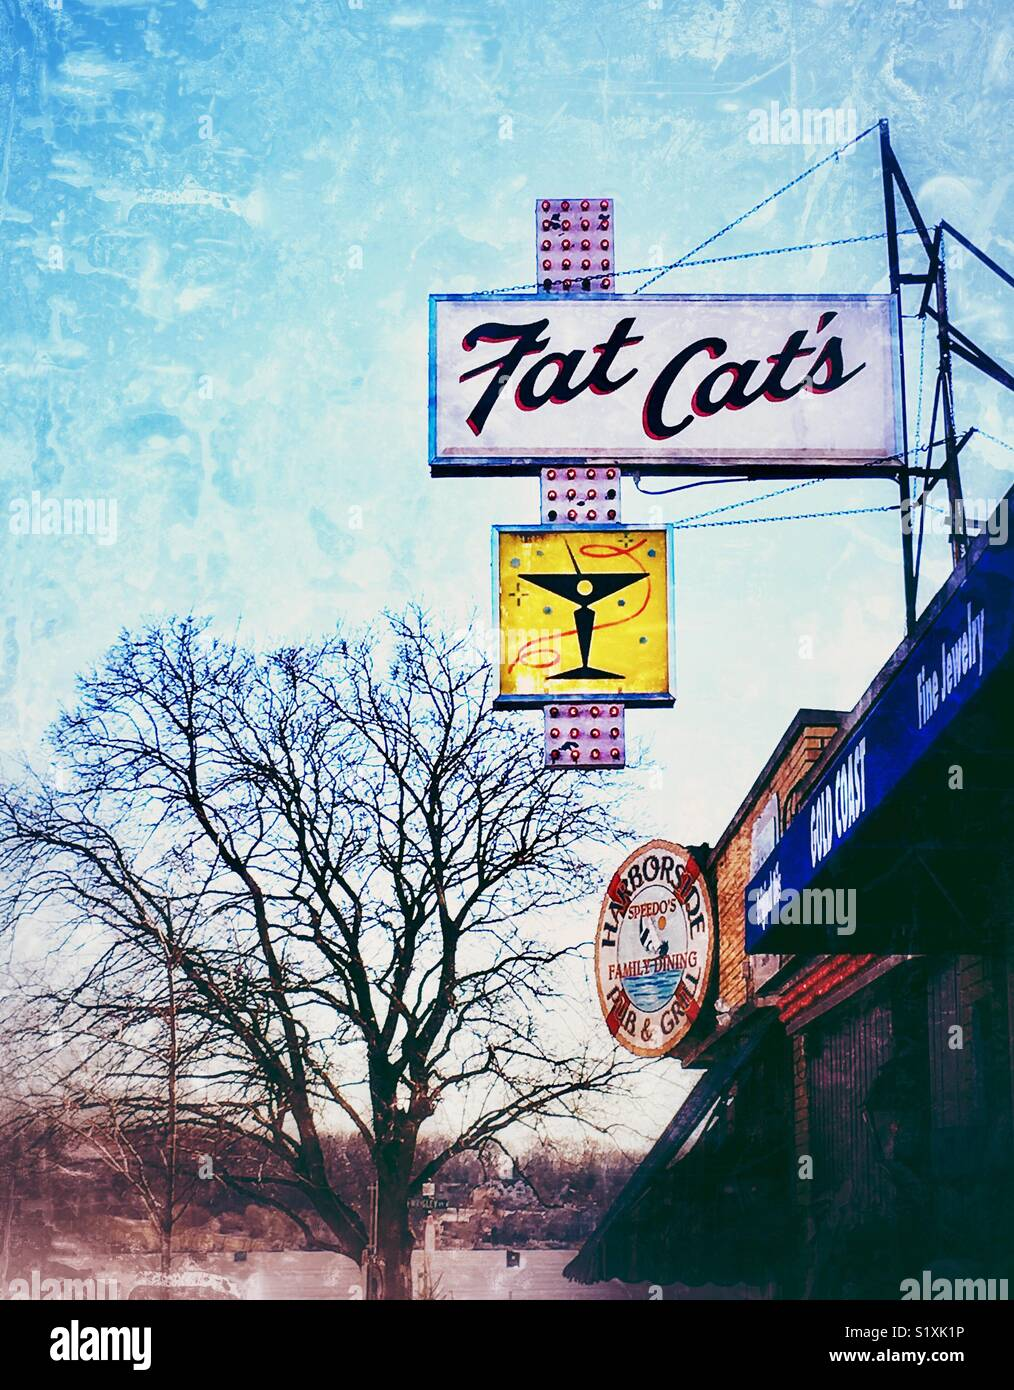 Billboard for Fat Cats bar next to gift shop and Harborside pub & grill in downtown Lake Geneva, WI - Stock Image